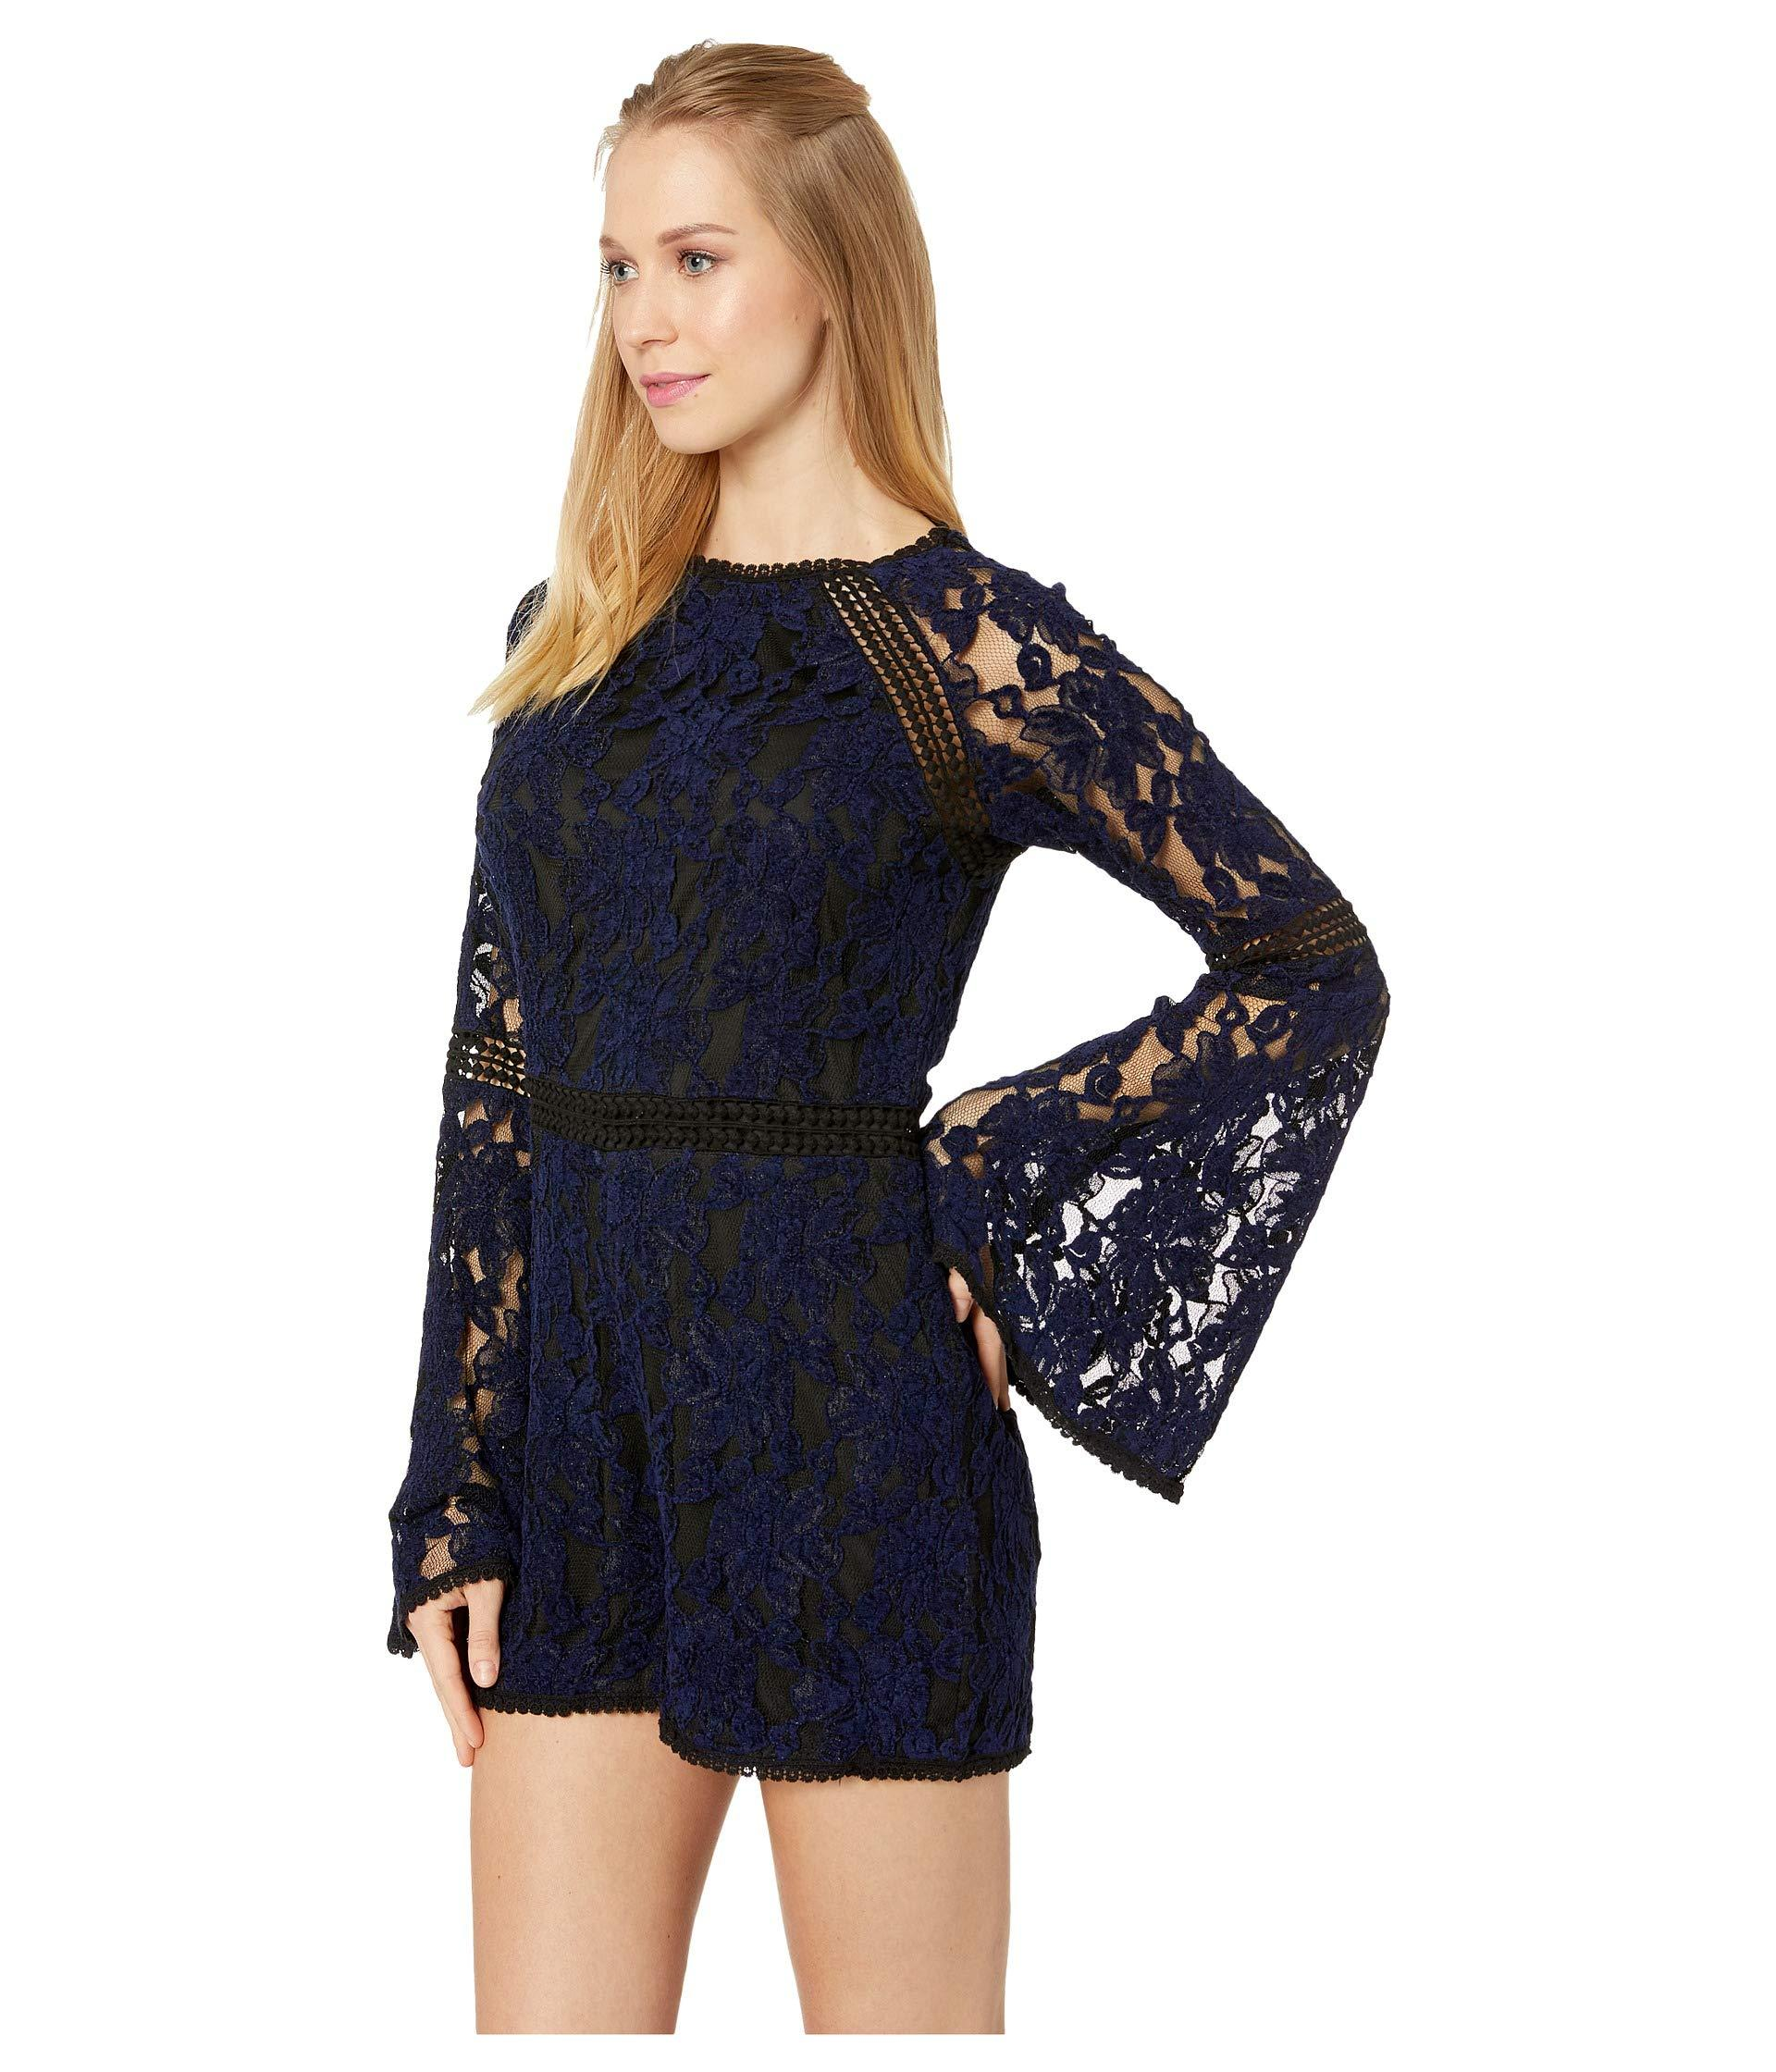 68d9ecd920c Lyst - Cupcakes And Cashmere Cally Chenille Lace Romper in Blue - Save 11%